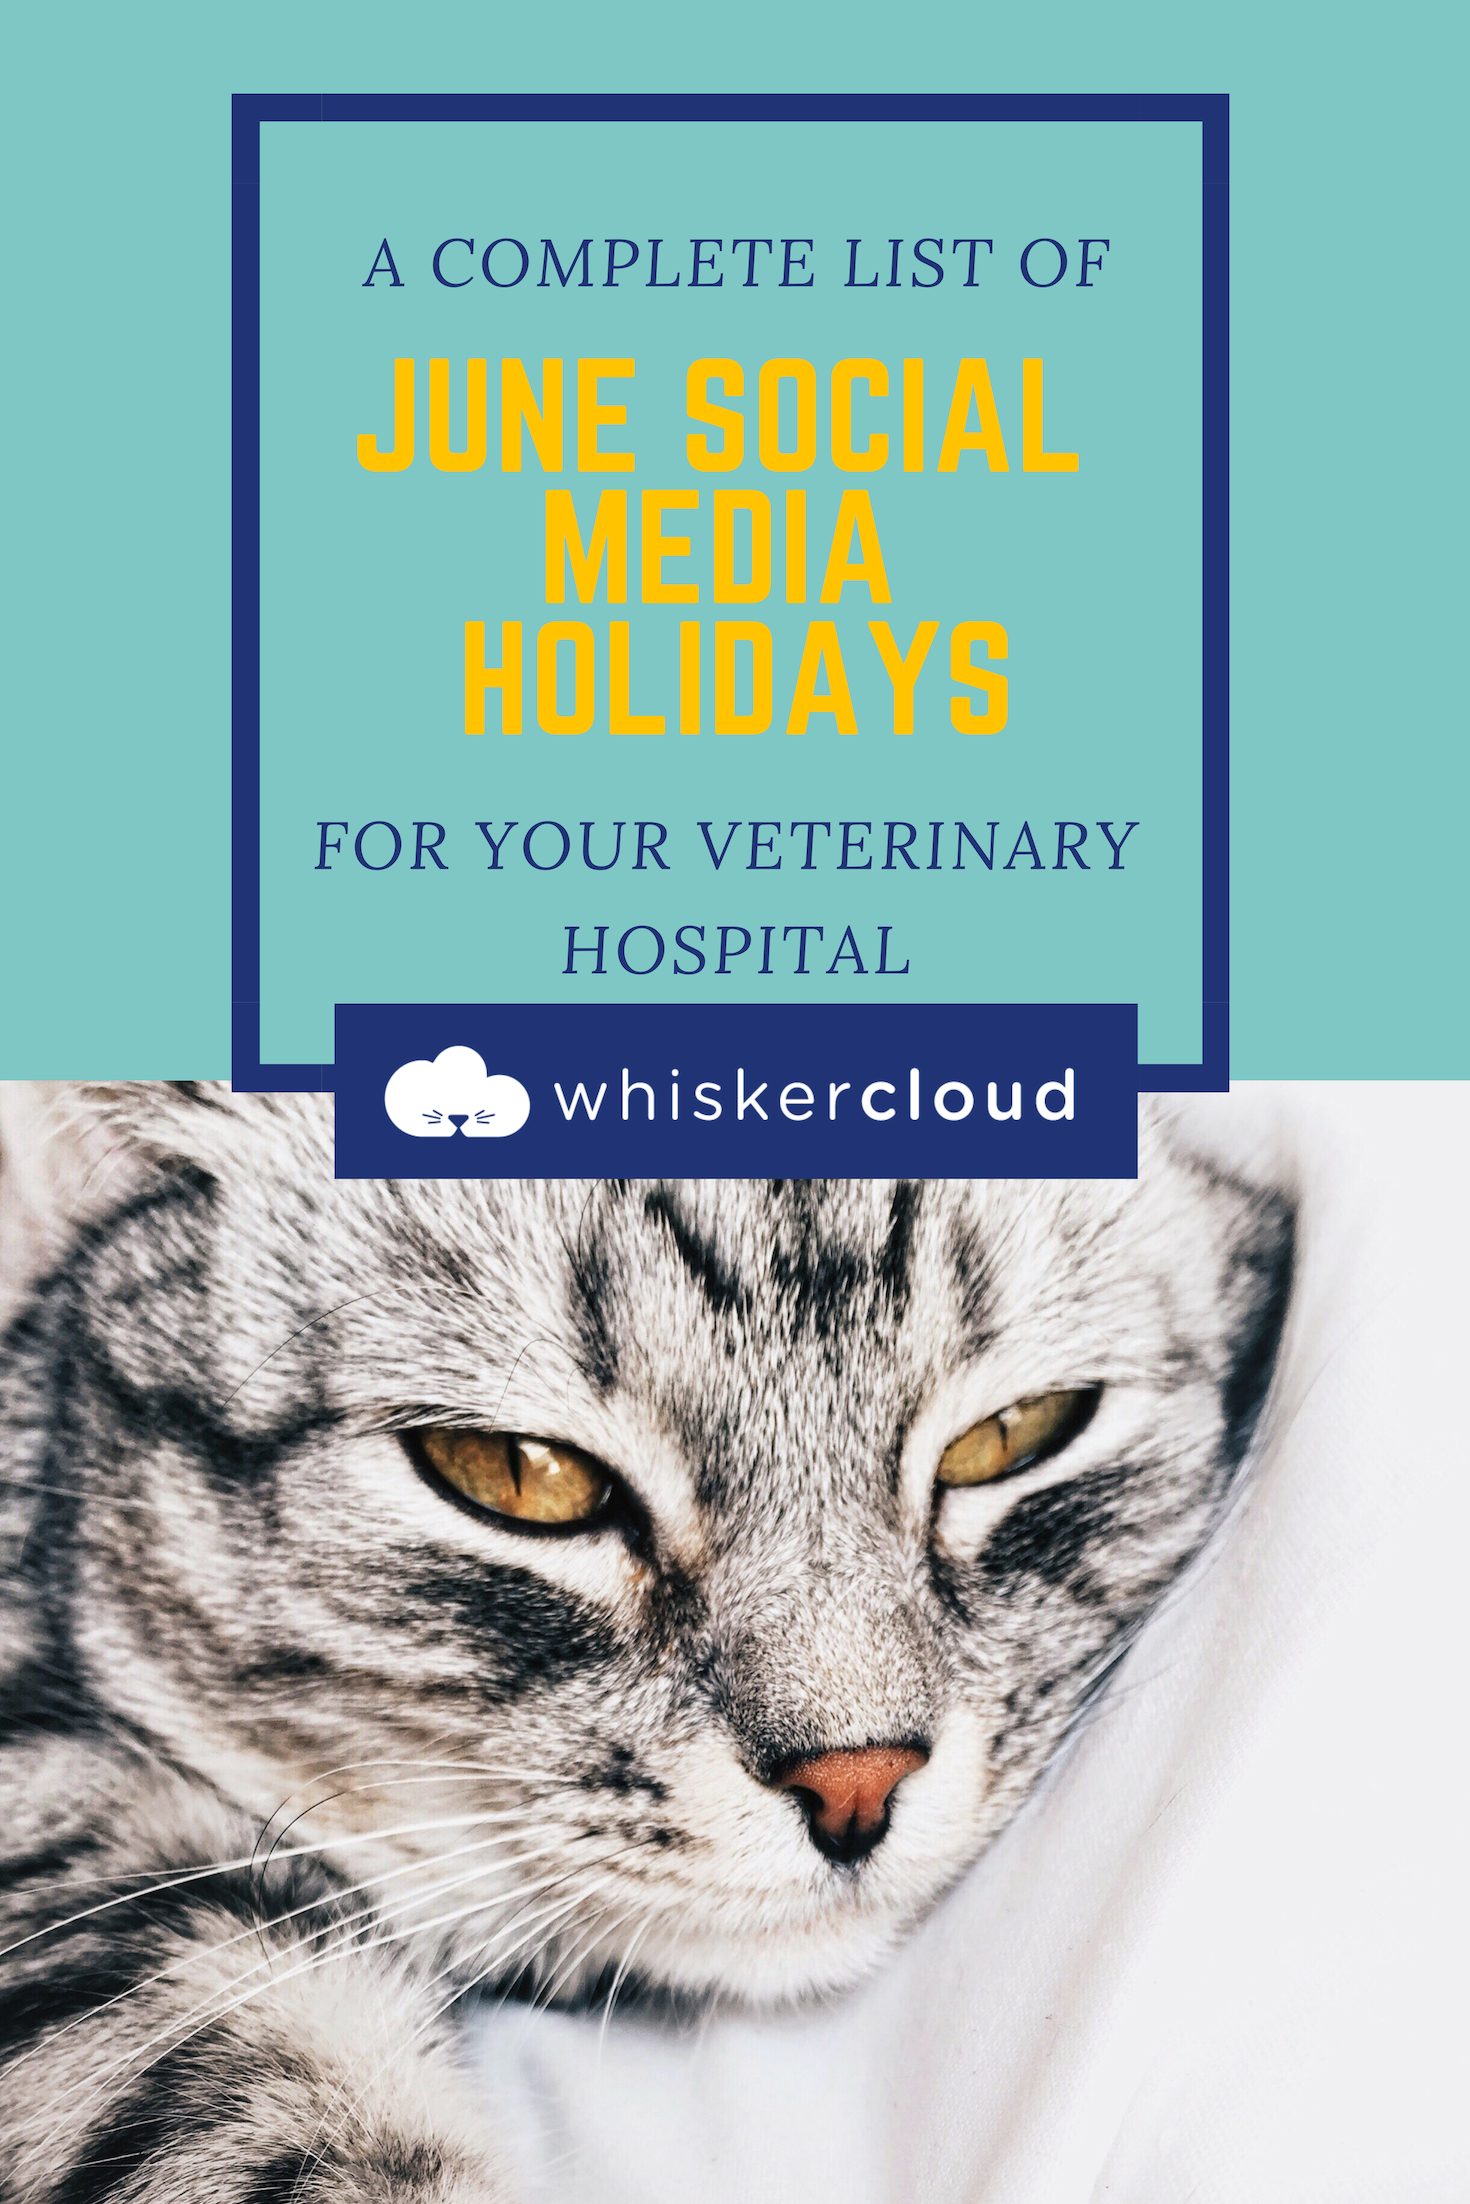 Complete List Of Social Media Holidays For Veterinary Hospitals Veterinary Hospital Veterinary Veterinary Clinic